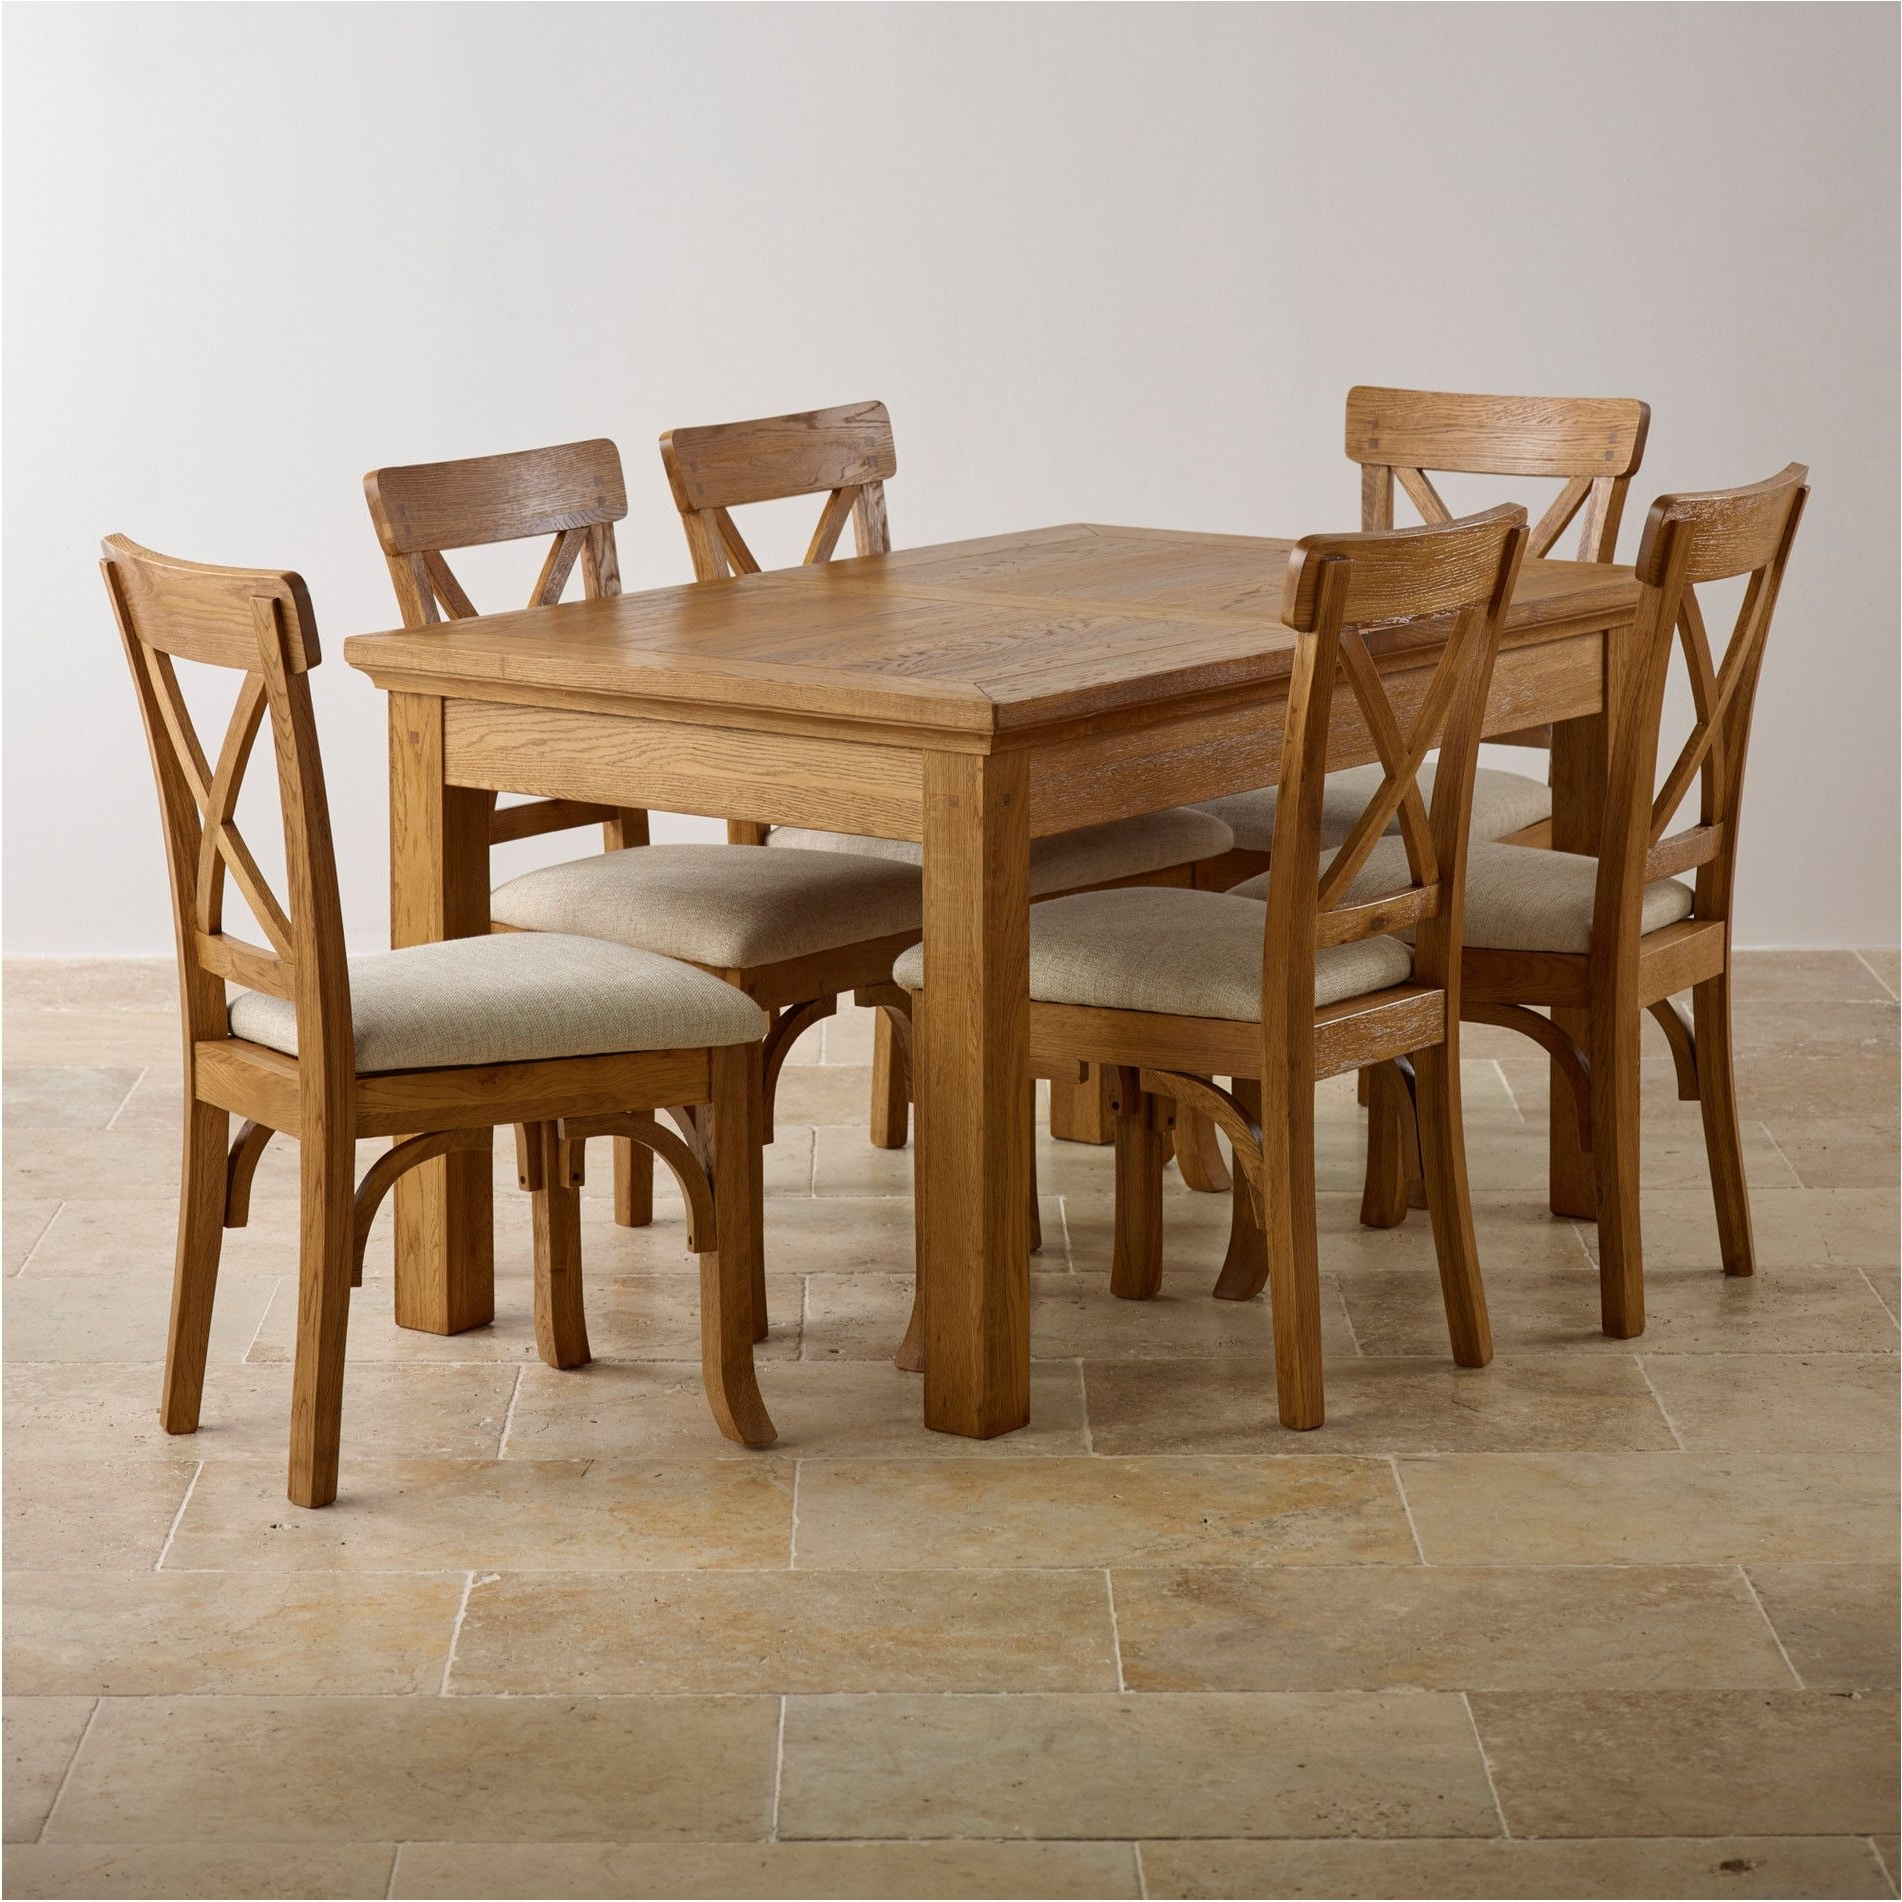 Great Top 72 Wicked Wooden Table Dining Room Chairs Solid Oak Intended For Most Recently Released Oval Oak Dining Tables And Chairs (View 16 of 25)